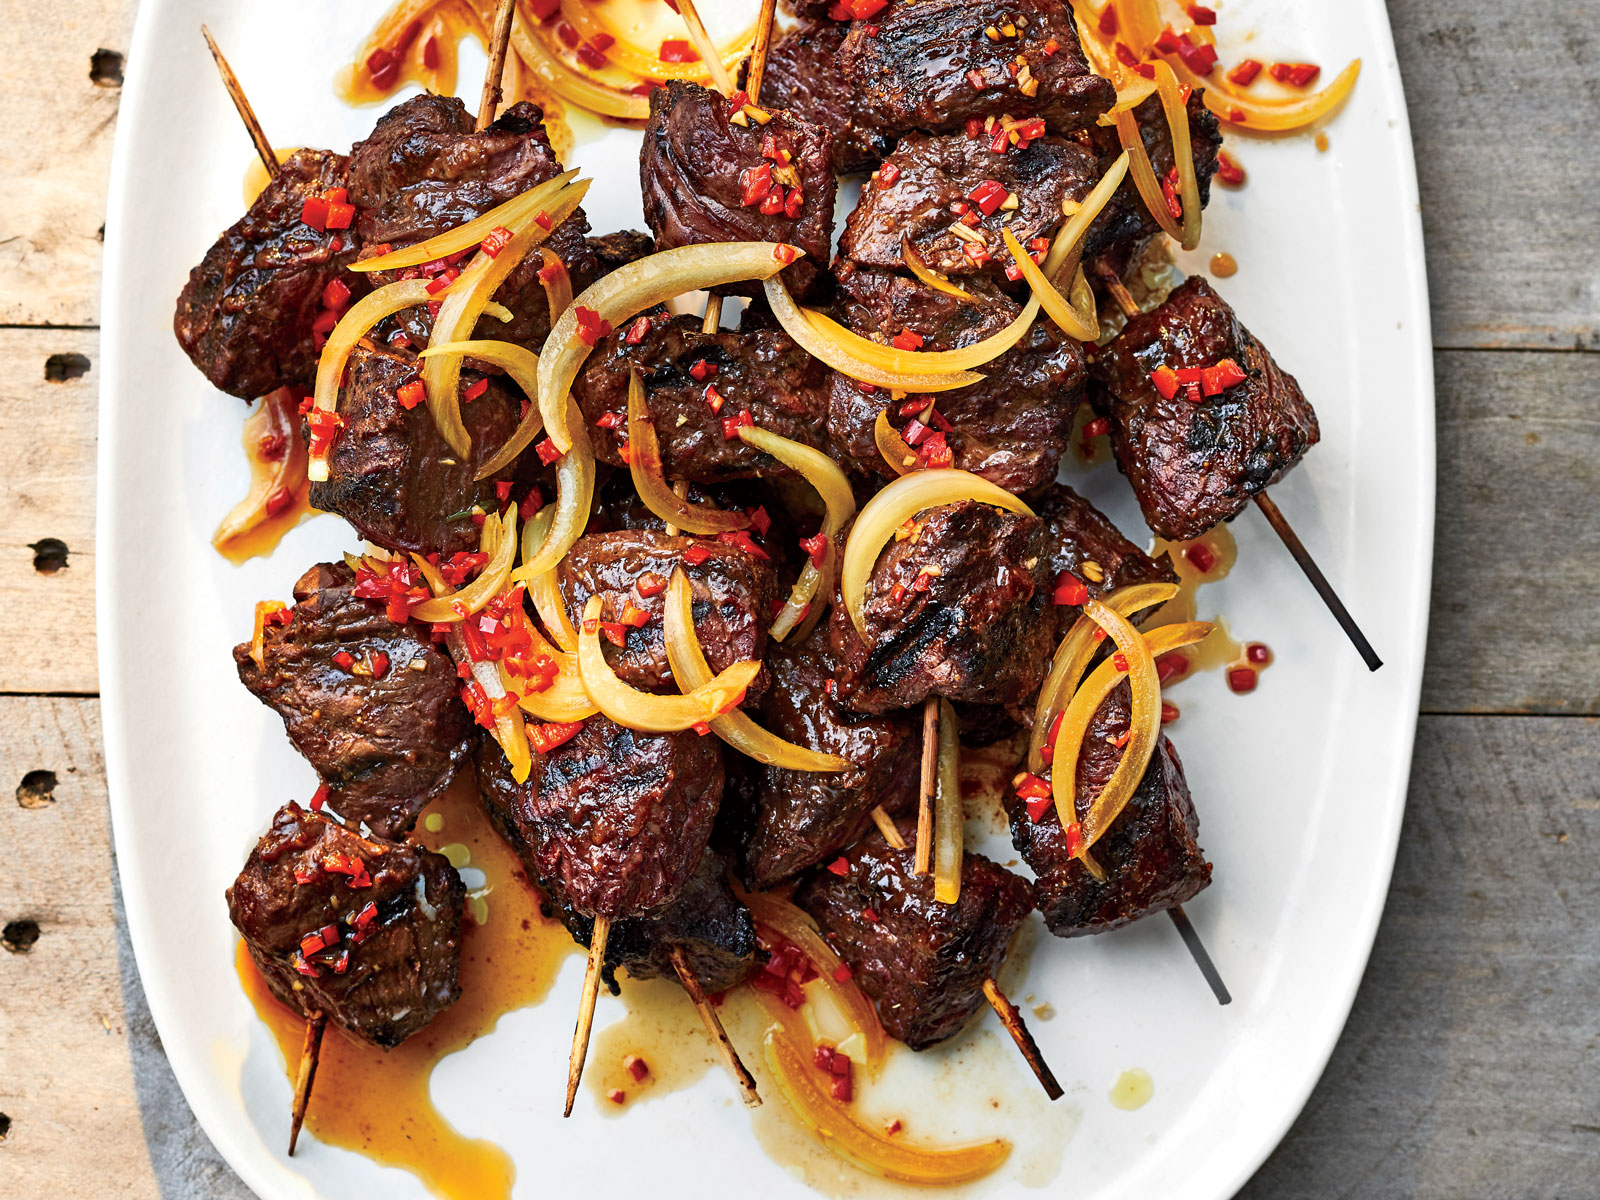 Pulehu Steak Tip Skewers with Maui Onion Finadene Sauce